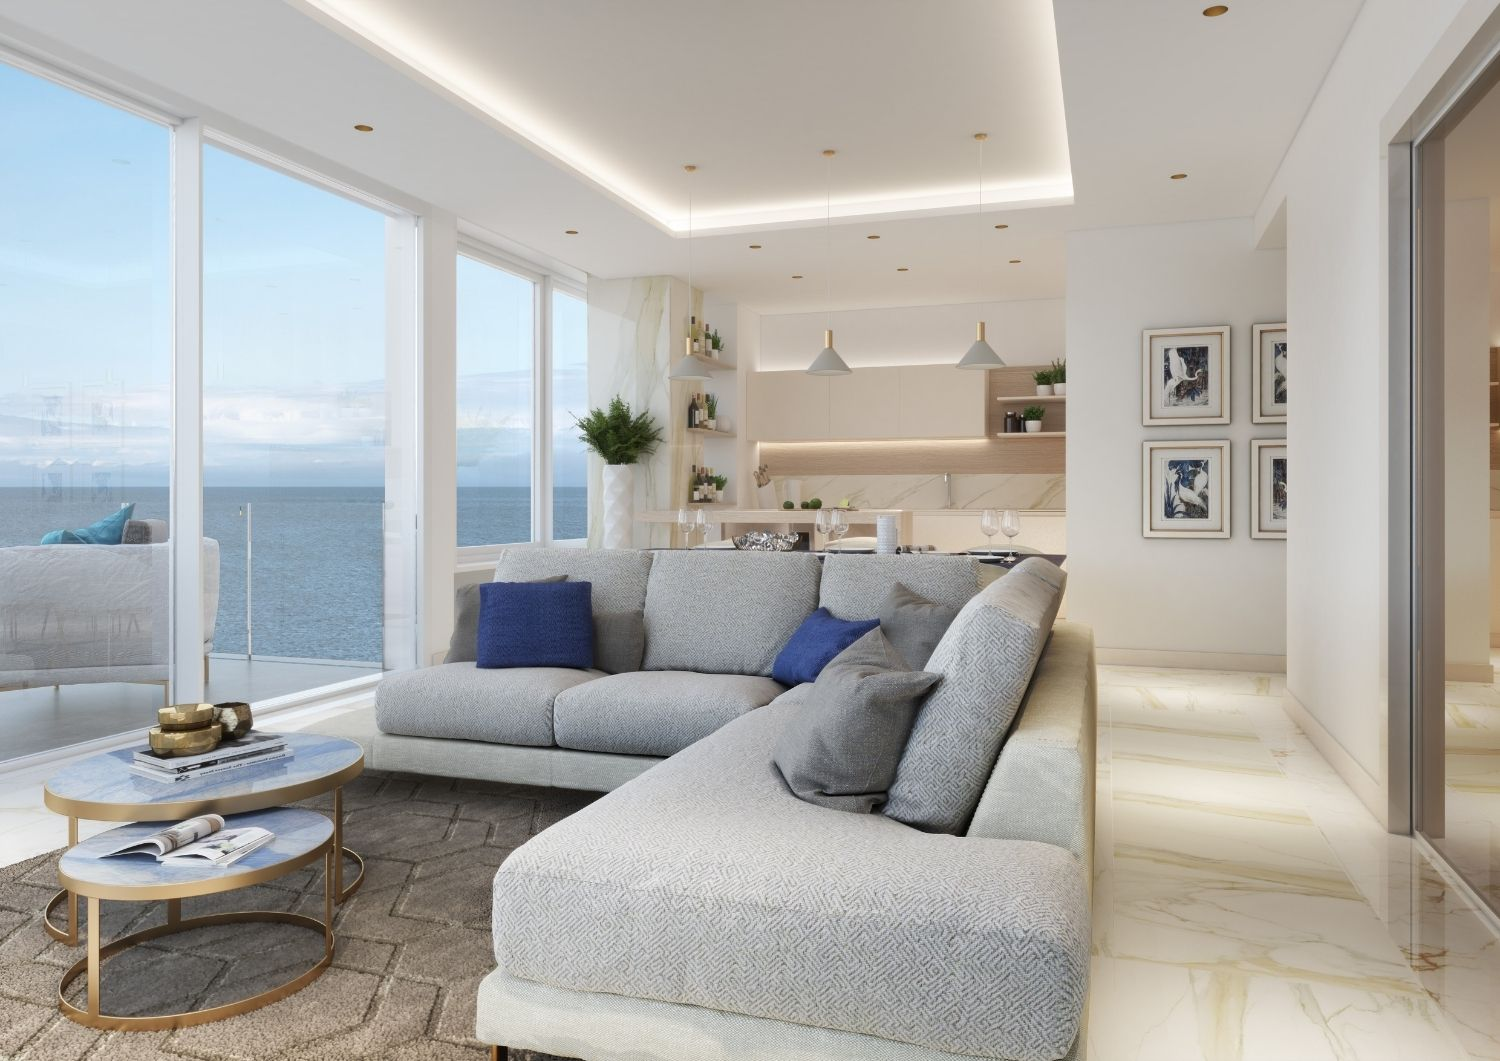 This living room shines thanks to the fine marble and the Marine setting. Studio D73